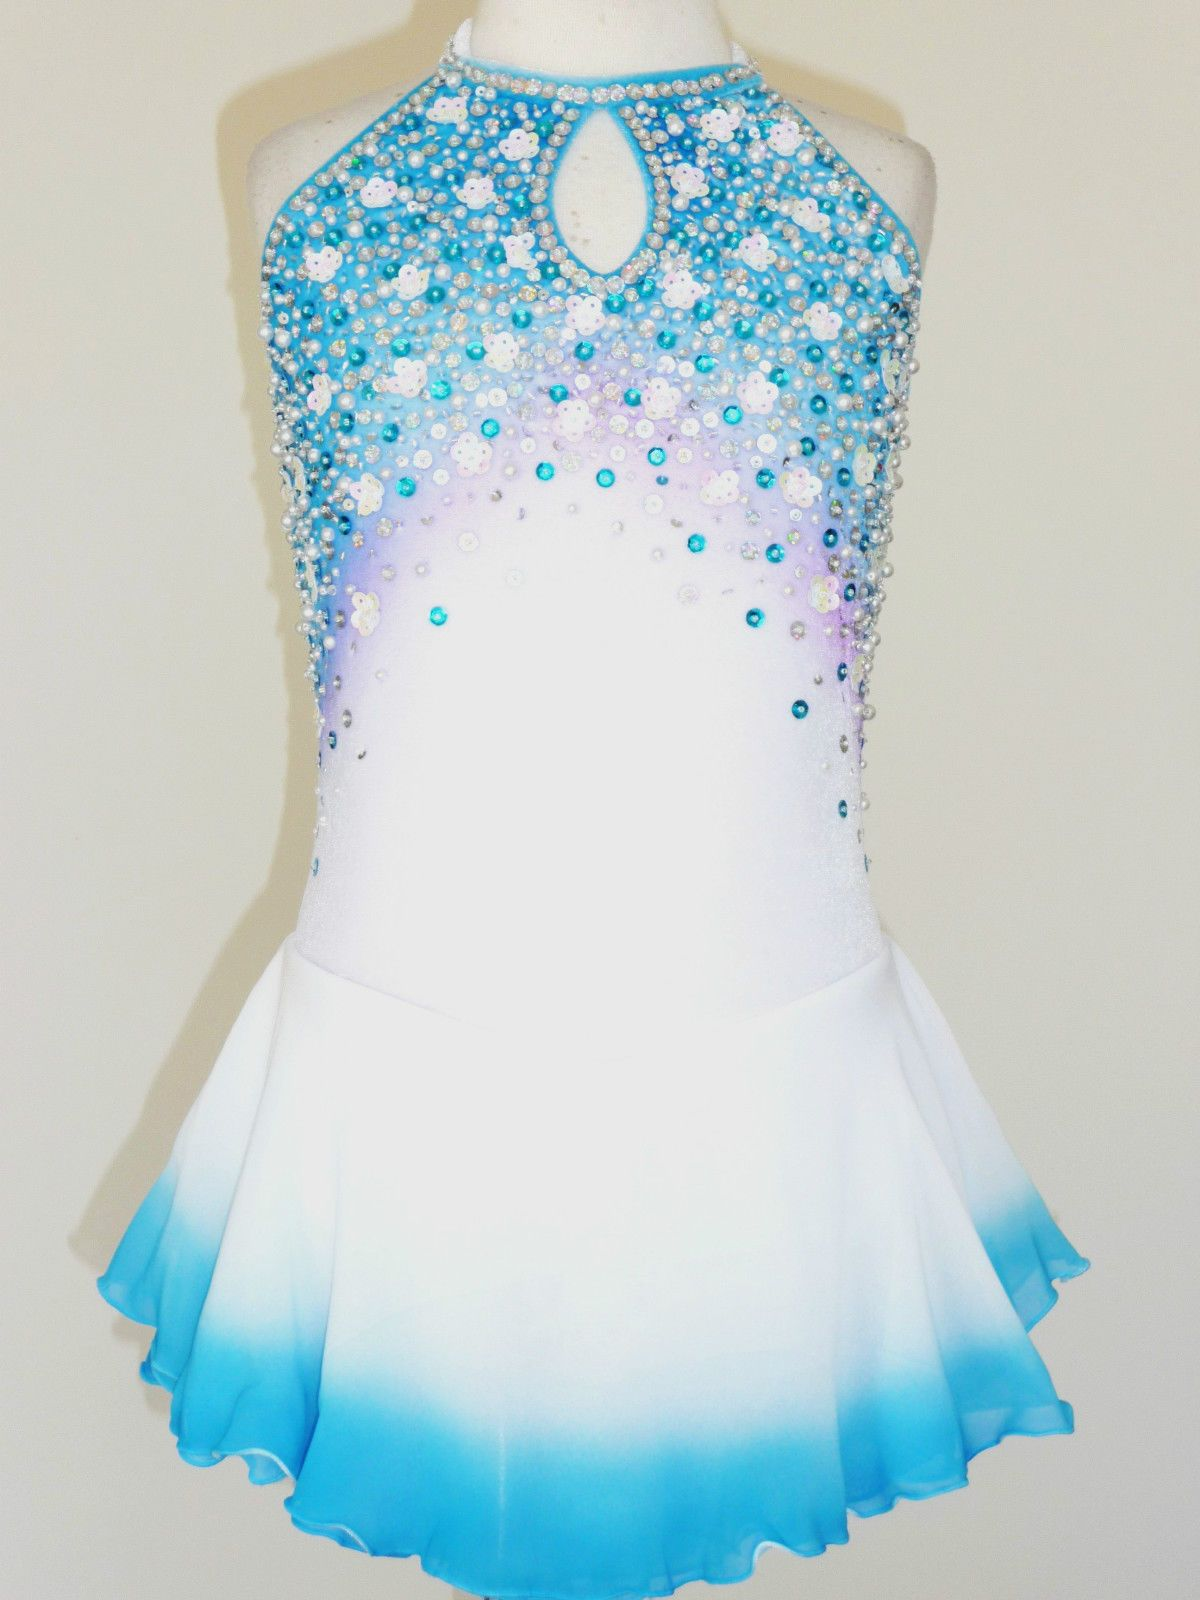 51b1cd315b Beautiful & lovely ice skating dress size girls medium | Skate Stuff ...